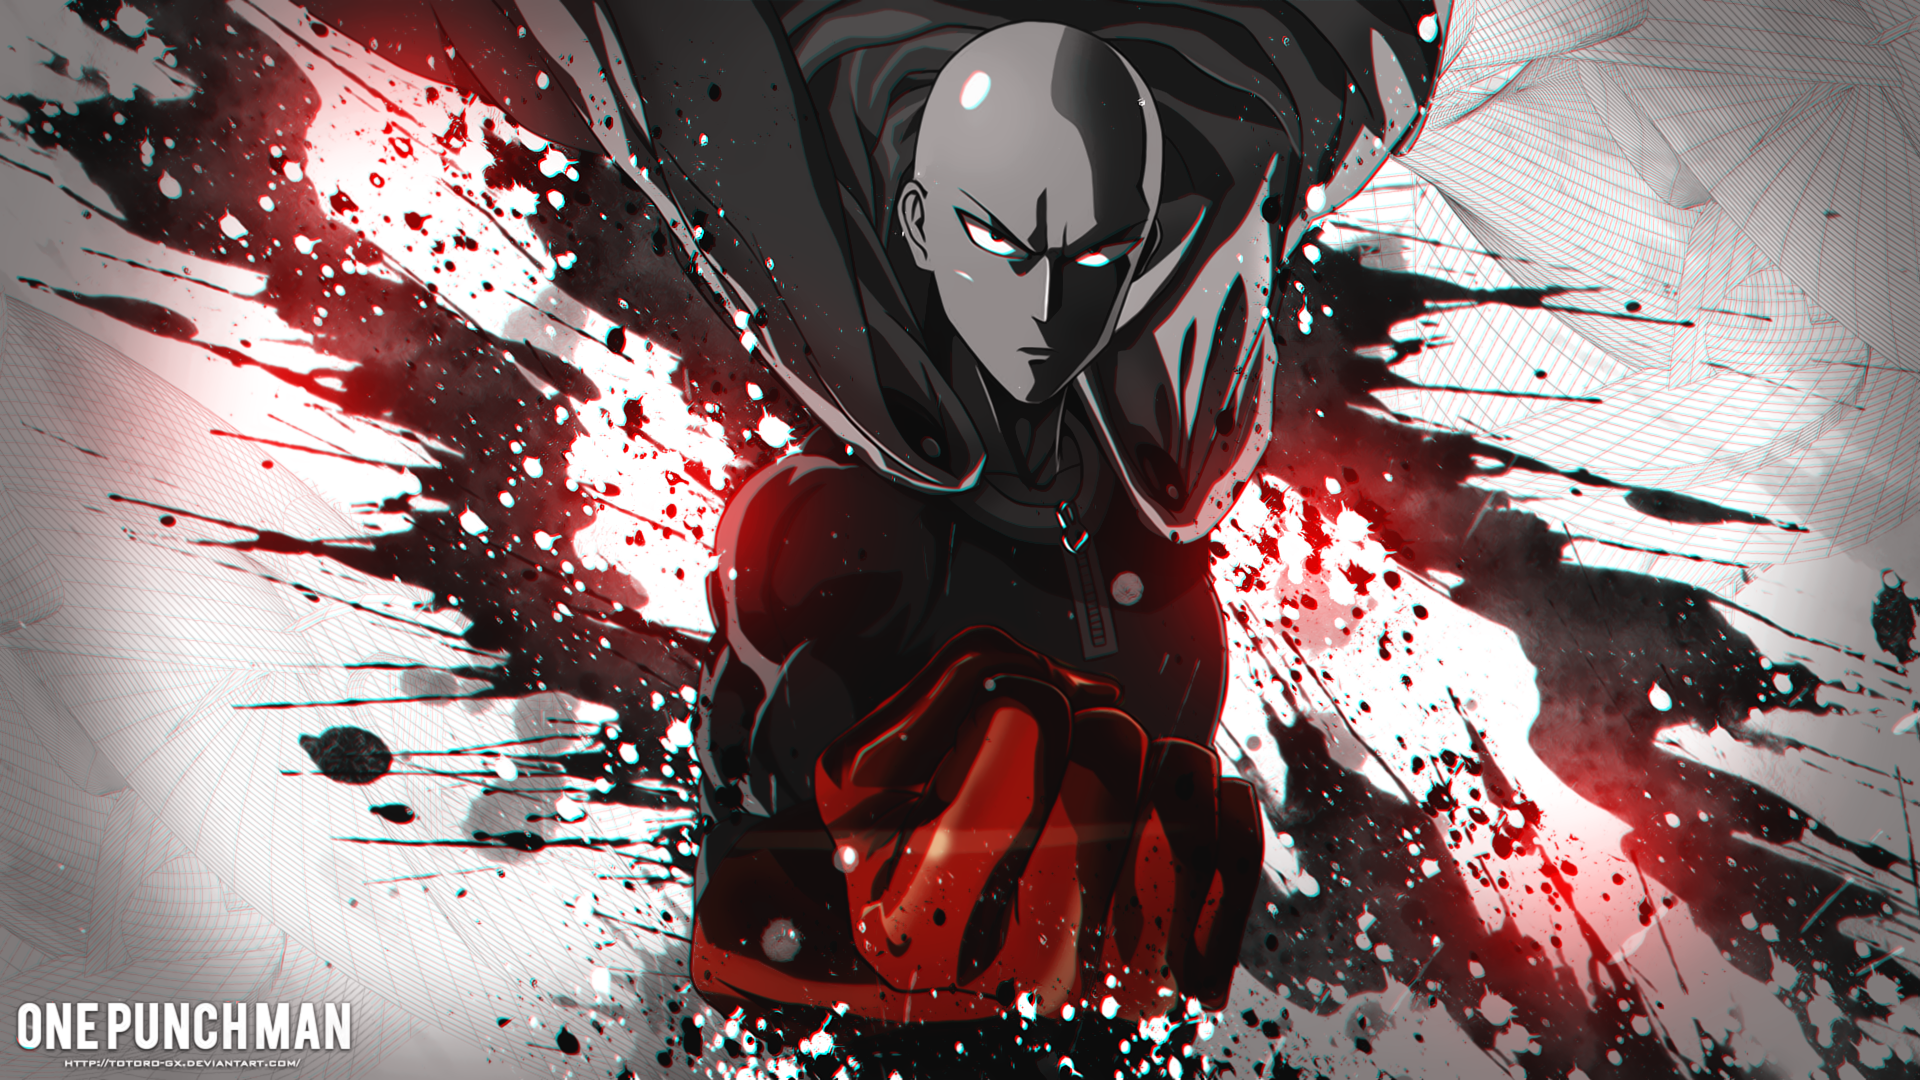 Anime One Punch Man Saitama One Punch Man Wallpaper Saitama